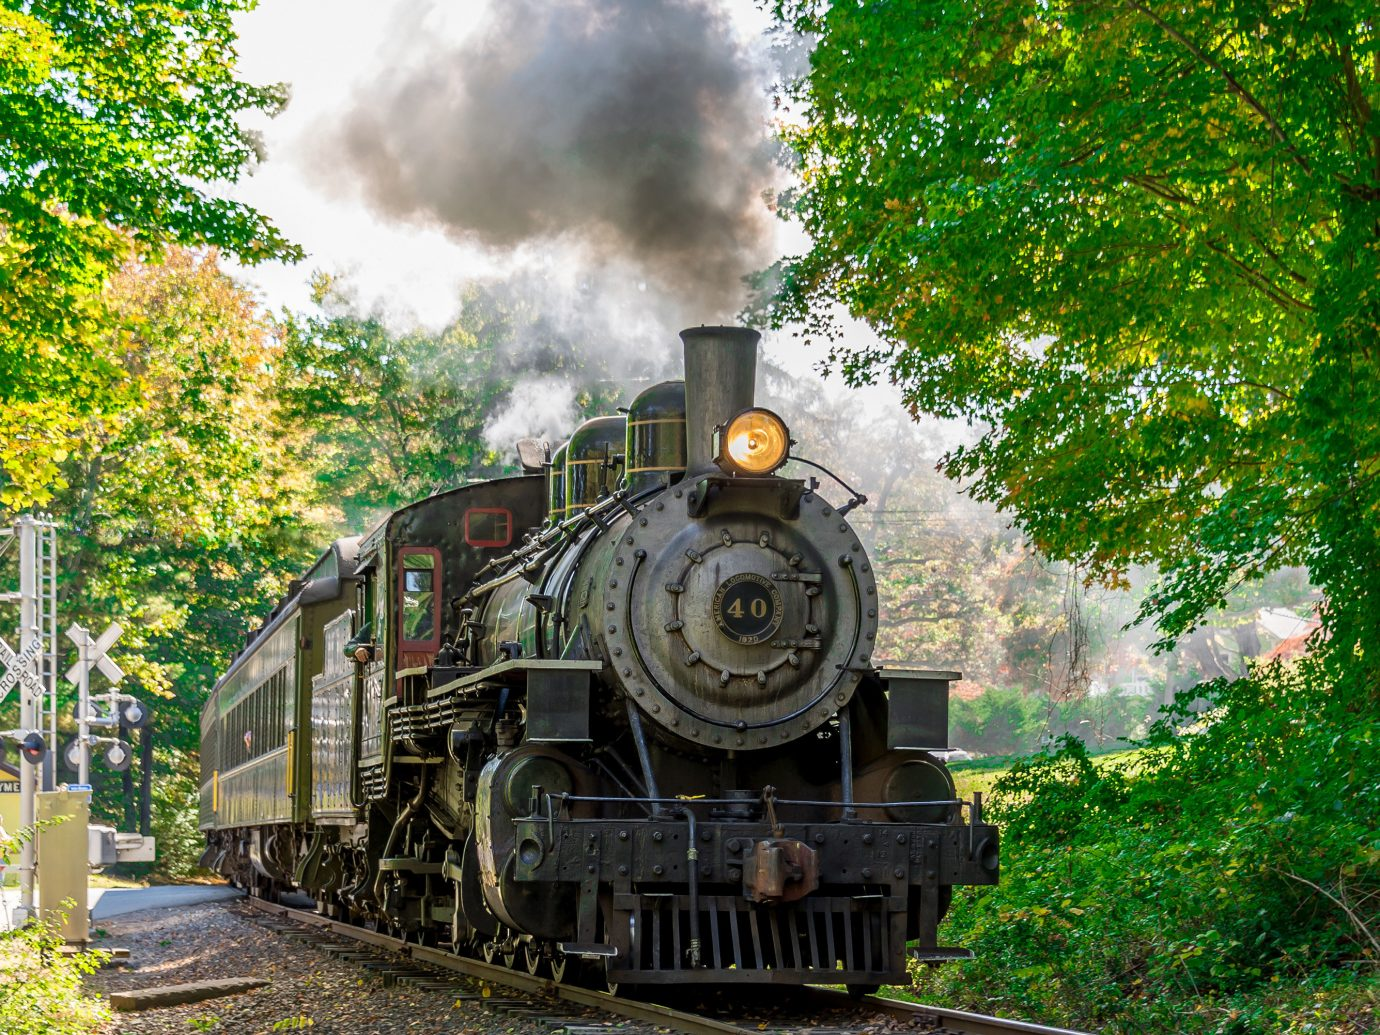 Family Travel Trip Ideas Weekend Getaways tree train track outdoor transport steam engine locomotive vehicle land vehicle rail transport steam engine rolling stock coming old smoke automotive engine part Forest railroad traveling wooded